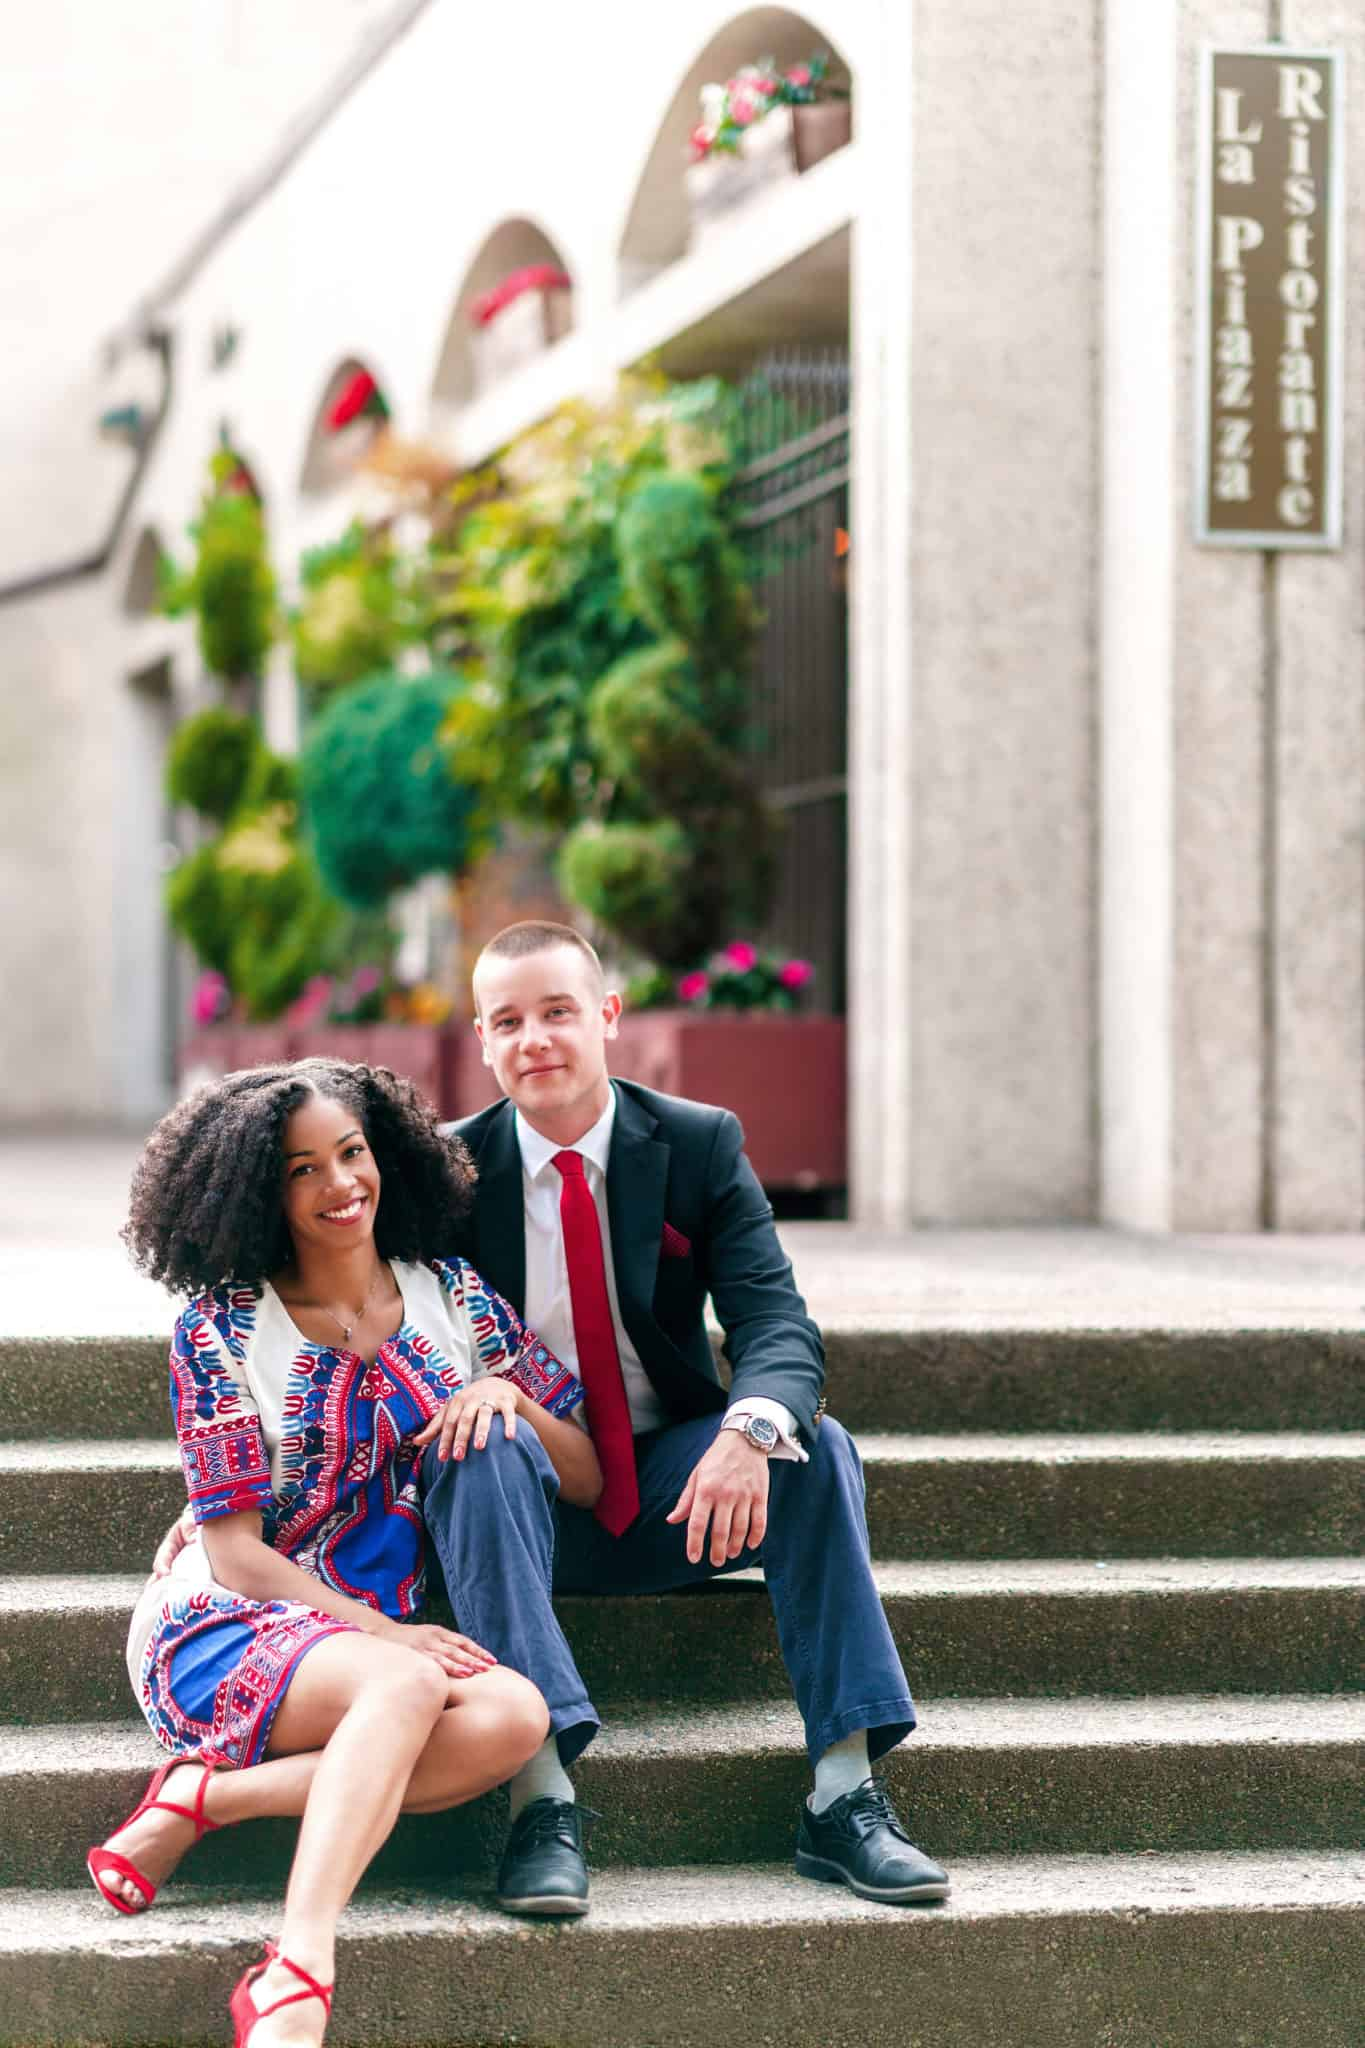 Natural Hair Engagement Photo | African Print Dress | Black and White Couple